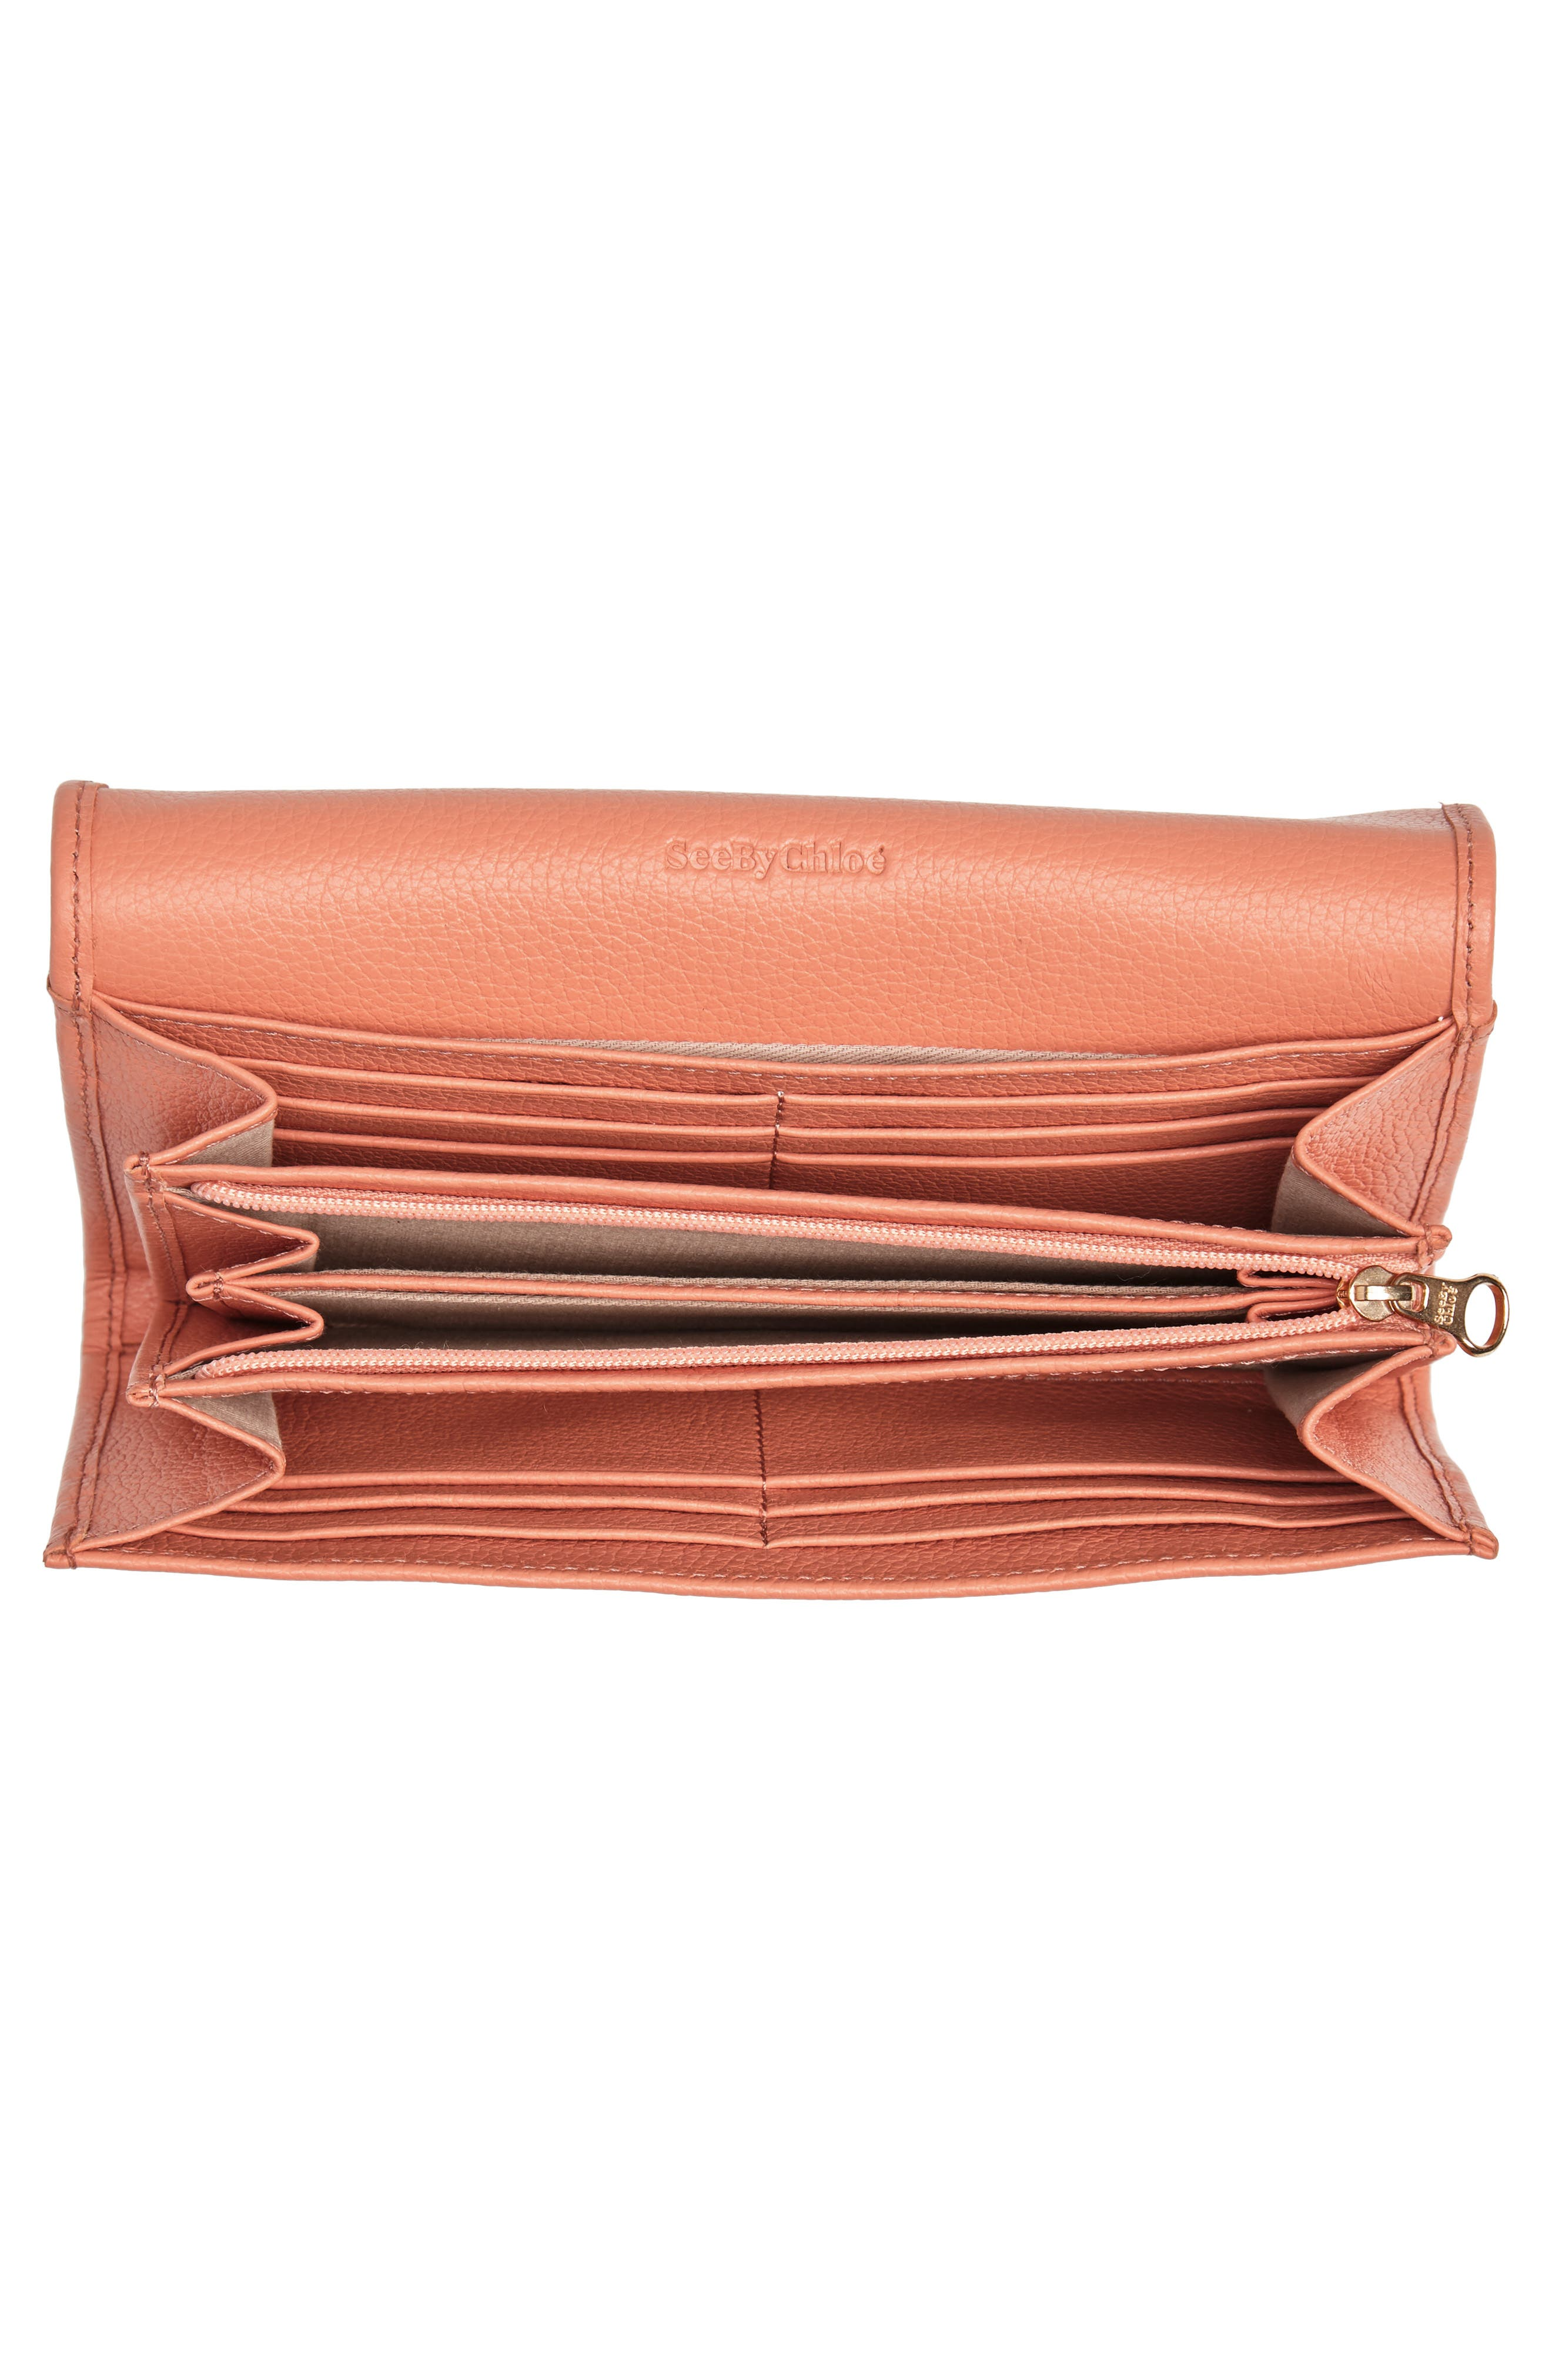 Lizzie Leather Continental Wallet,                             Alternate thumbnail 11, color,                             Canyon Sunset